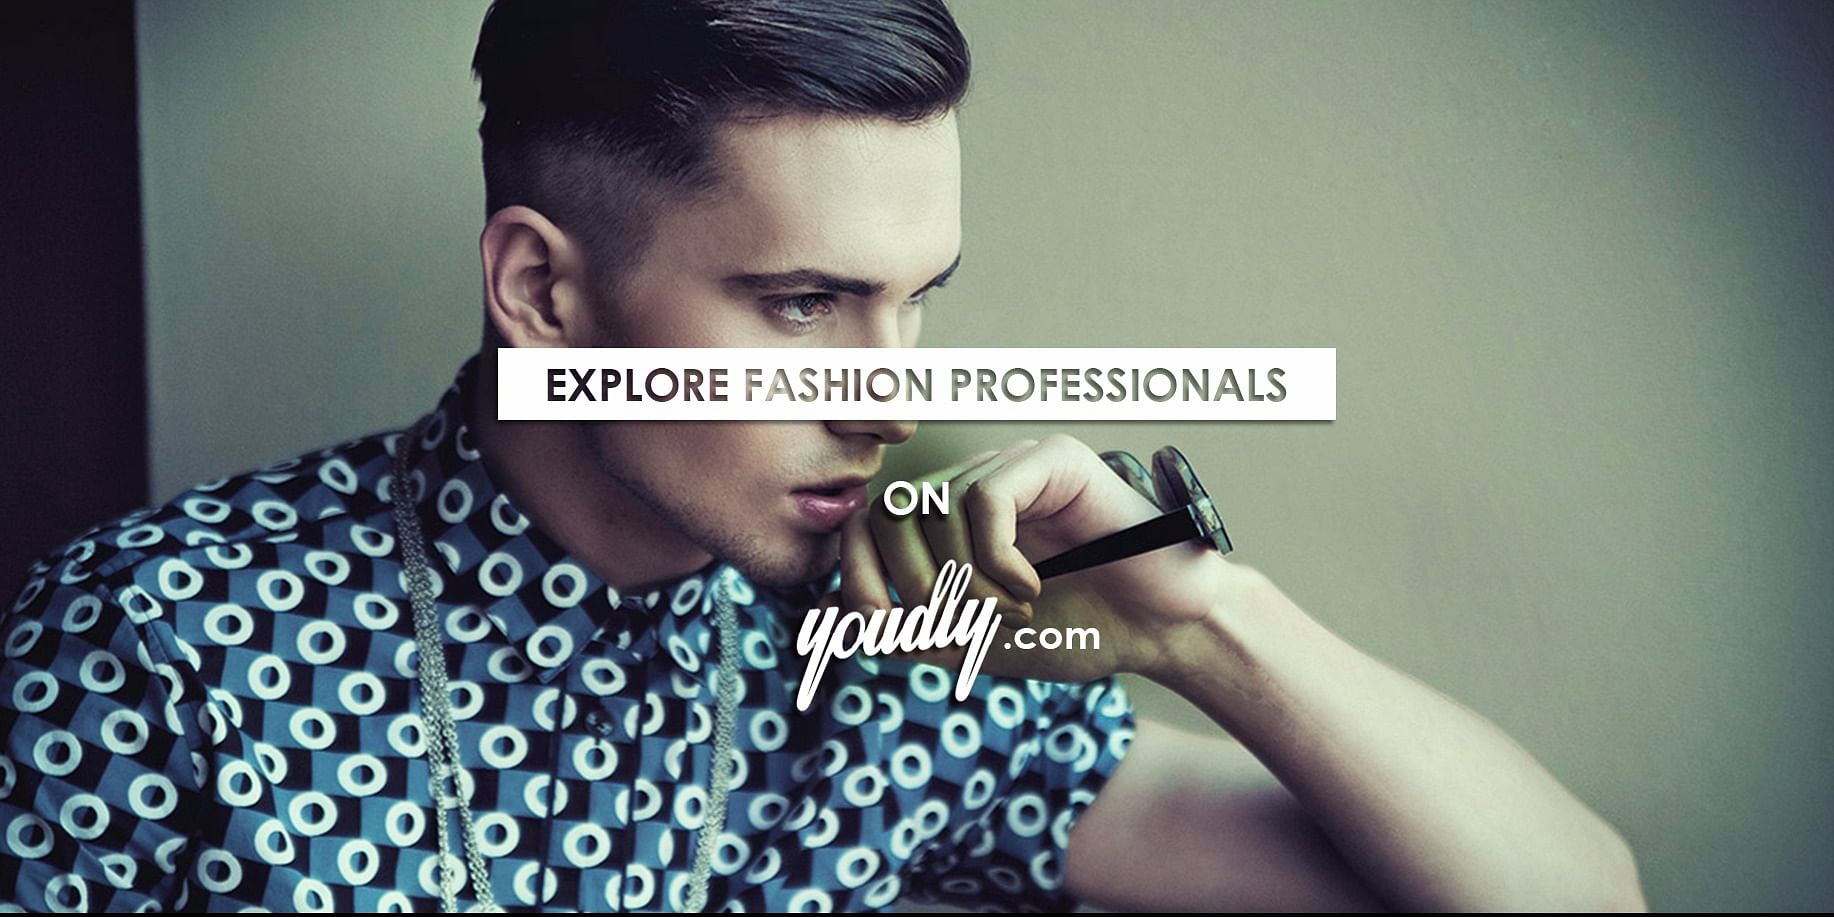 Youdly  Fashion Networking © Nisakii Infratecture Pvt. Ltd.